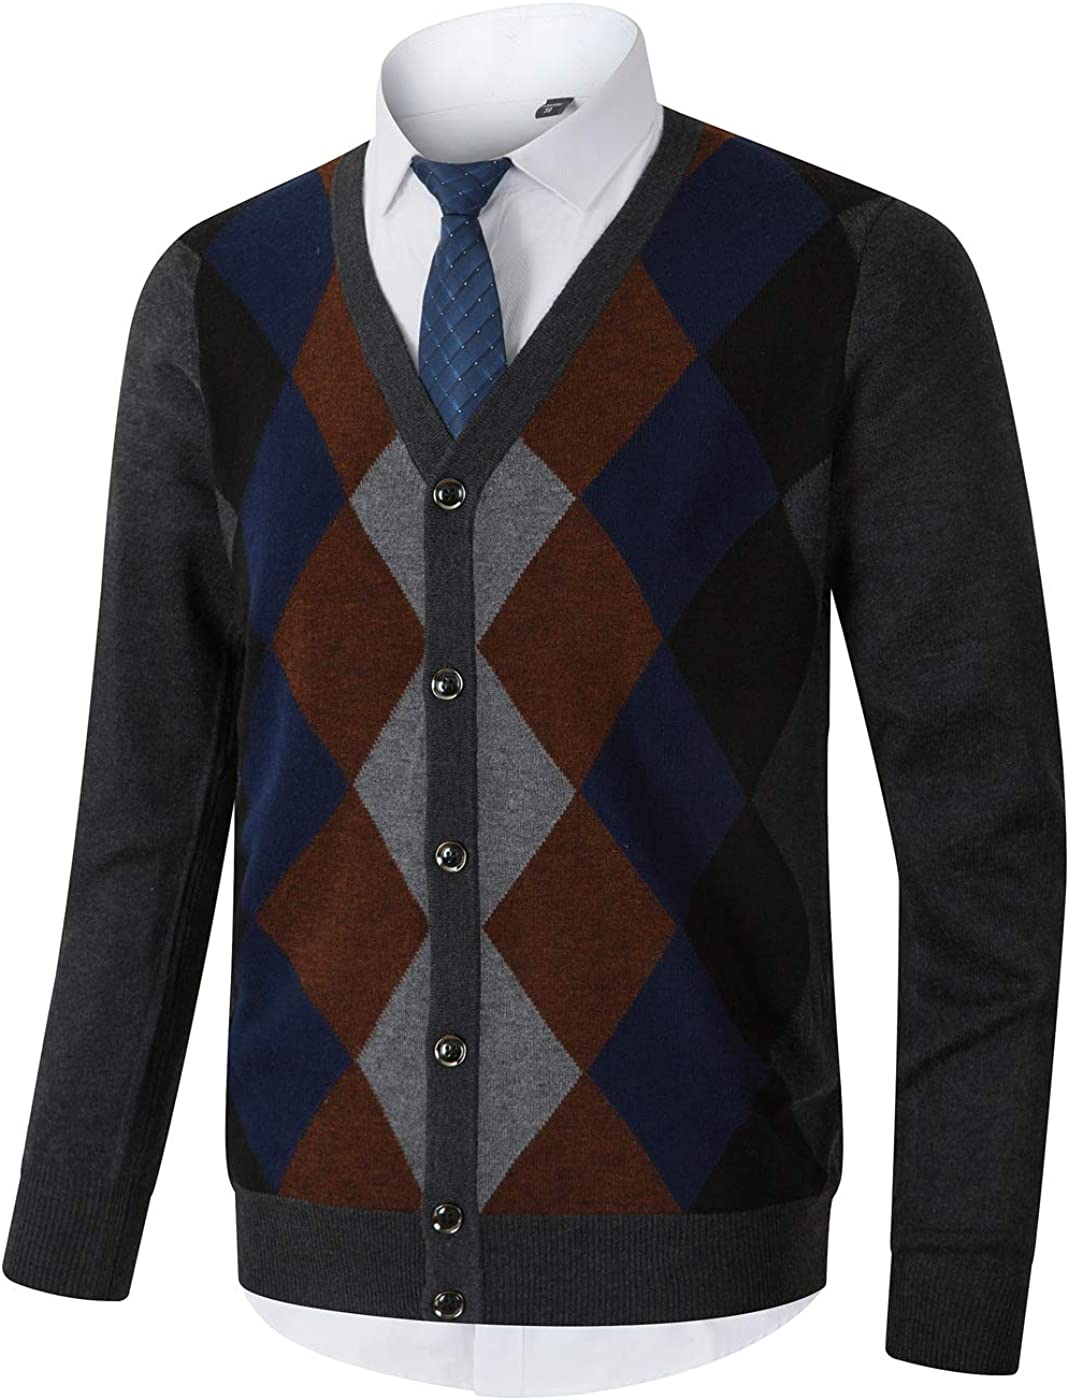 Men's Vintage Sweaters, Retro Jumpers 1920s to 1980s Homovater Mens Casual Slim Fit Long Sleeve V-Neck Cardigan Sweaters Button Down Knitwear Argyle with Ribbing Edge $28.77 AT vintagedancer.com